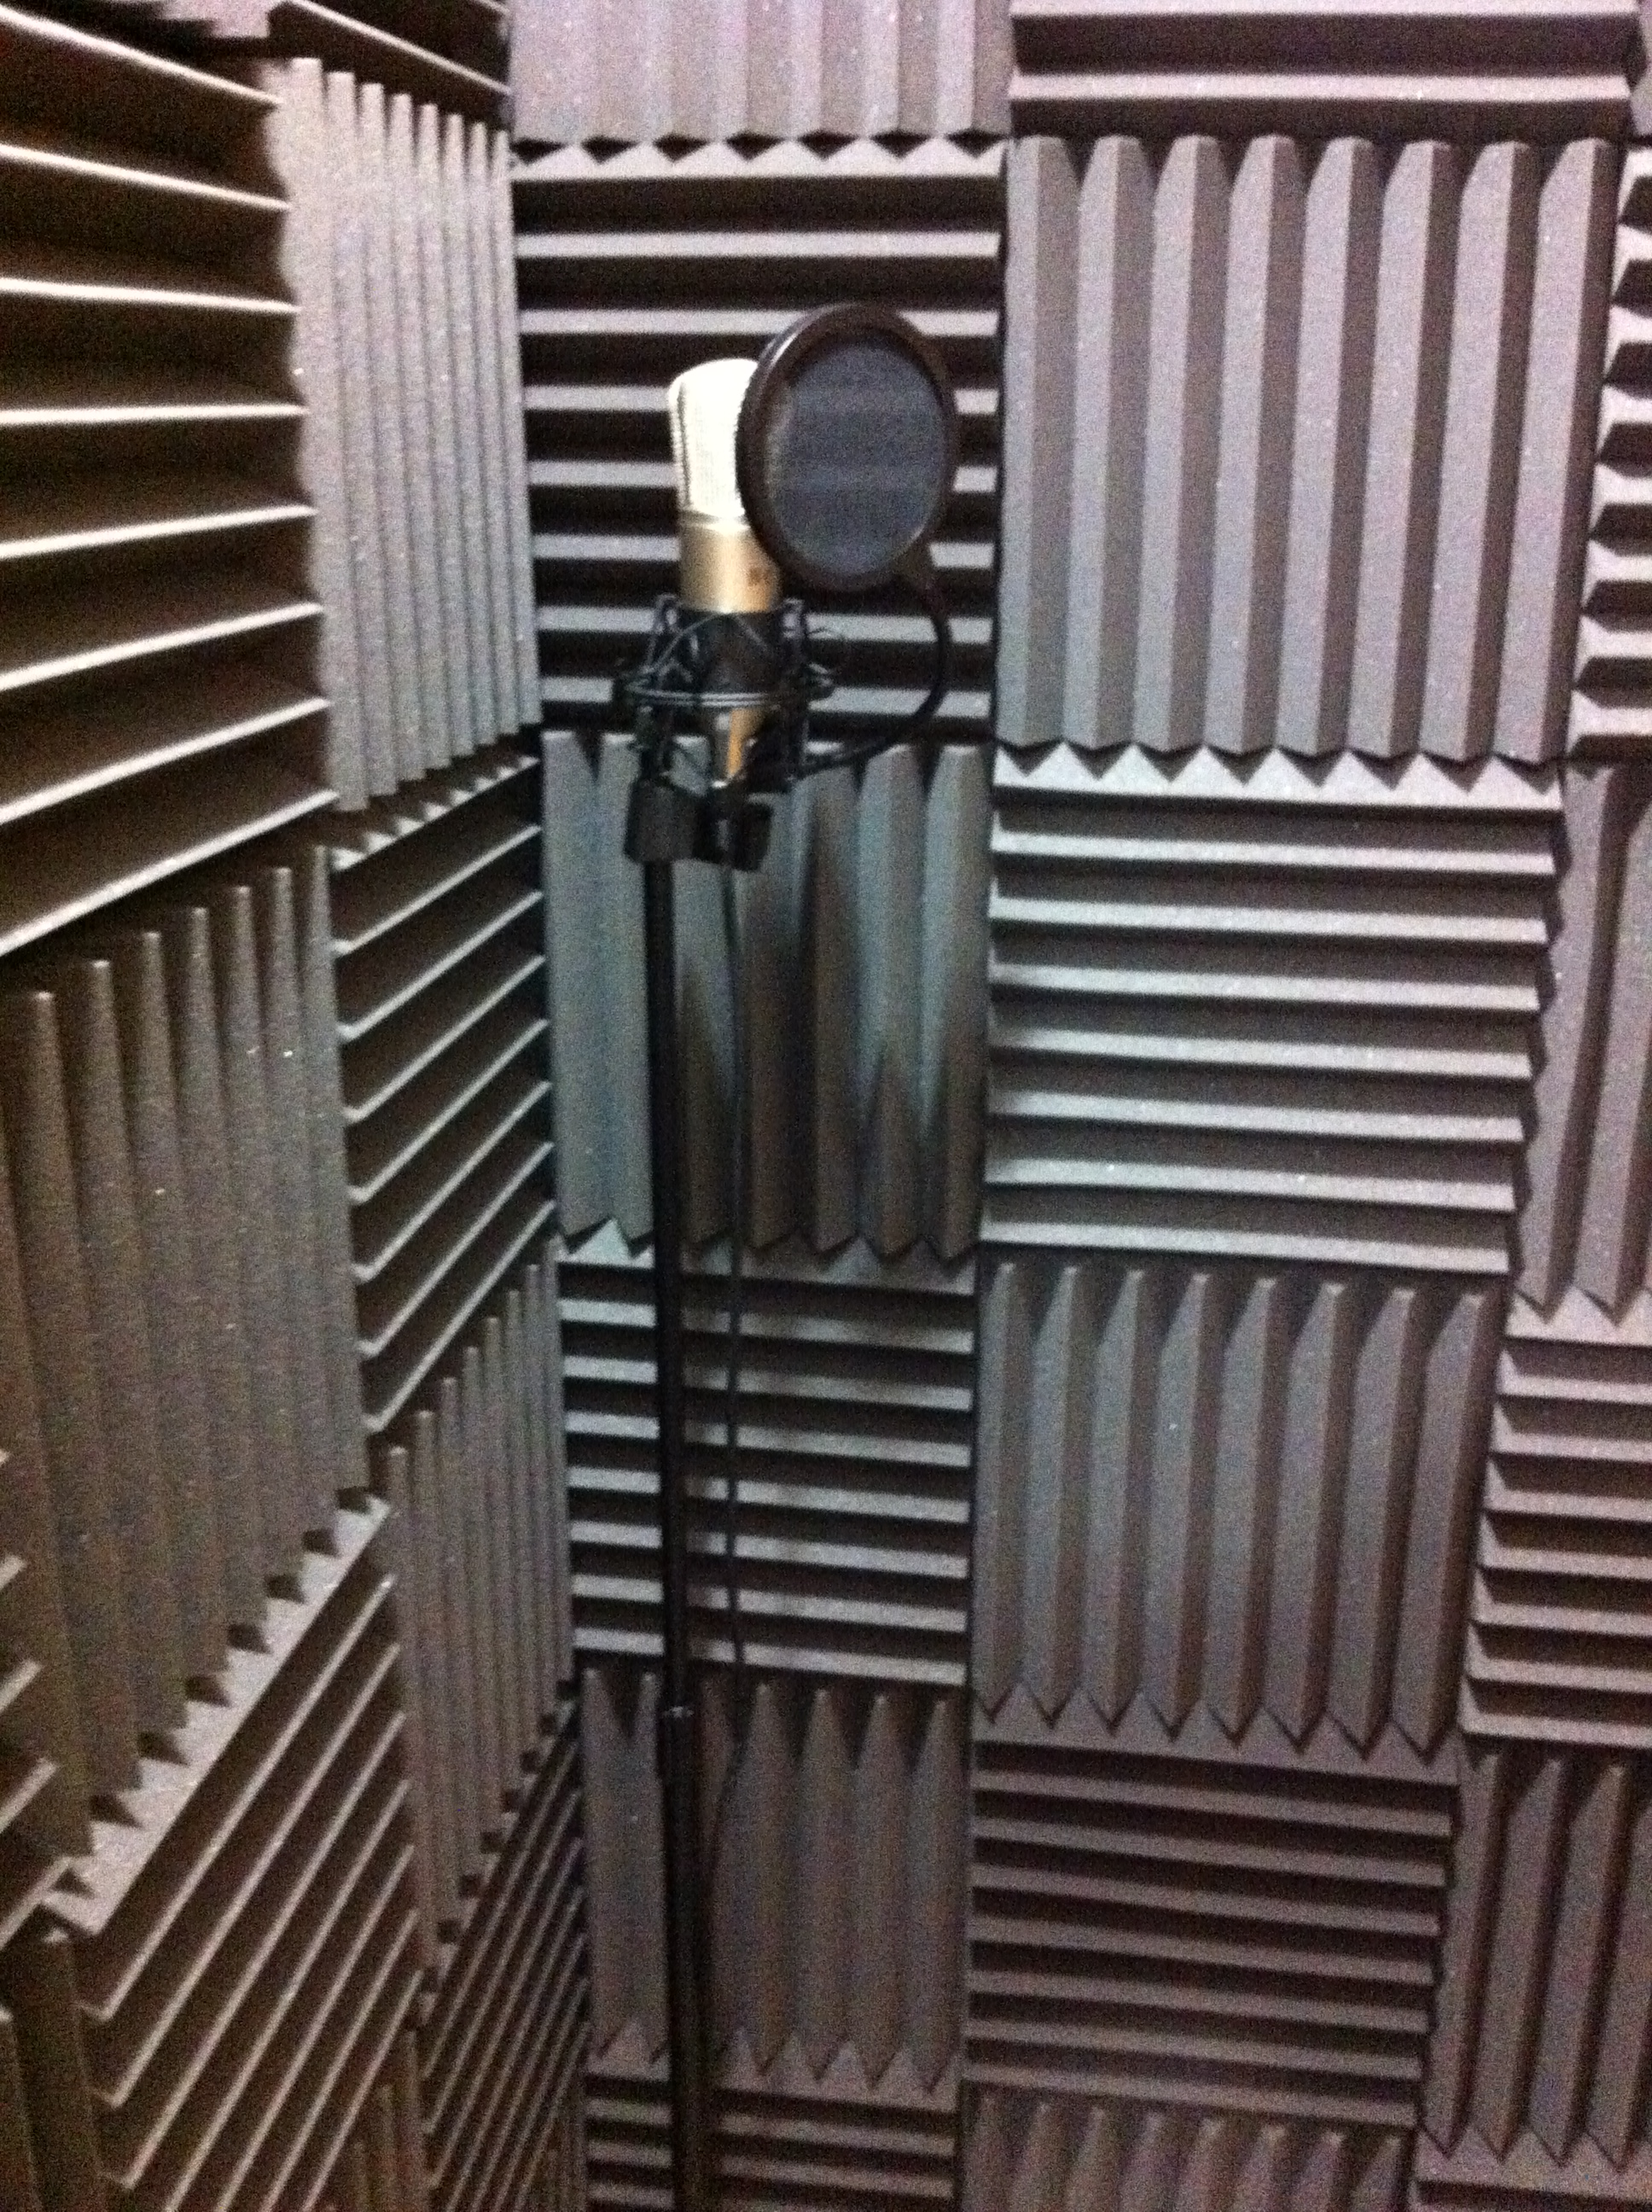 . Building a pro soundbooth at low cost by Scott Gorman   Voice123 blog